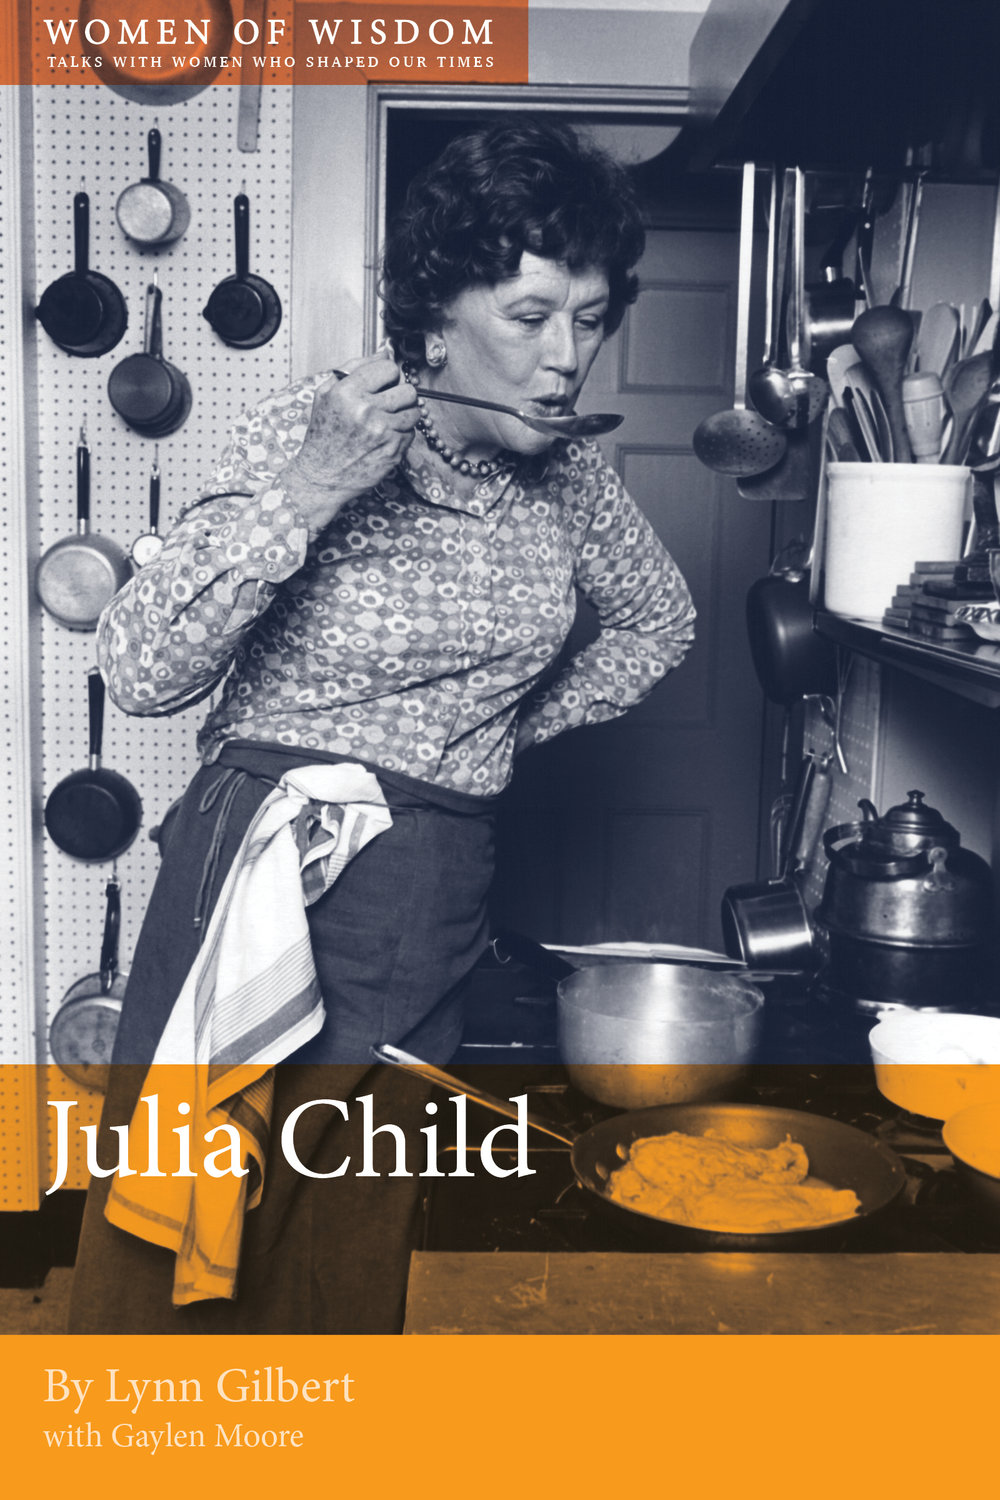 Julia_Child_Photographed_by_Lynn_Gilbert_©_1981_Particular_Passions